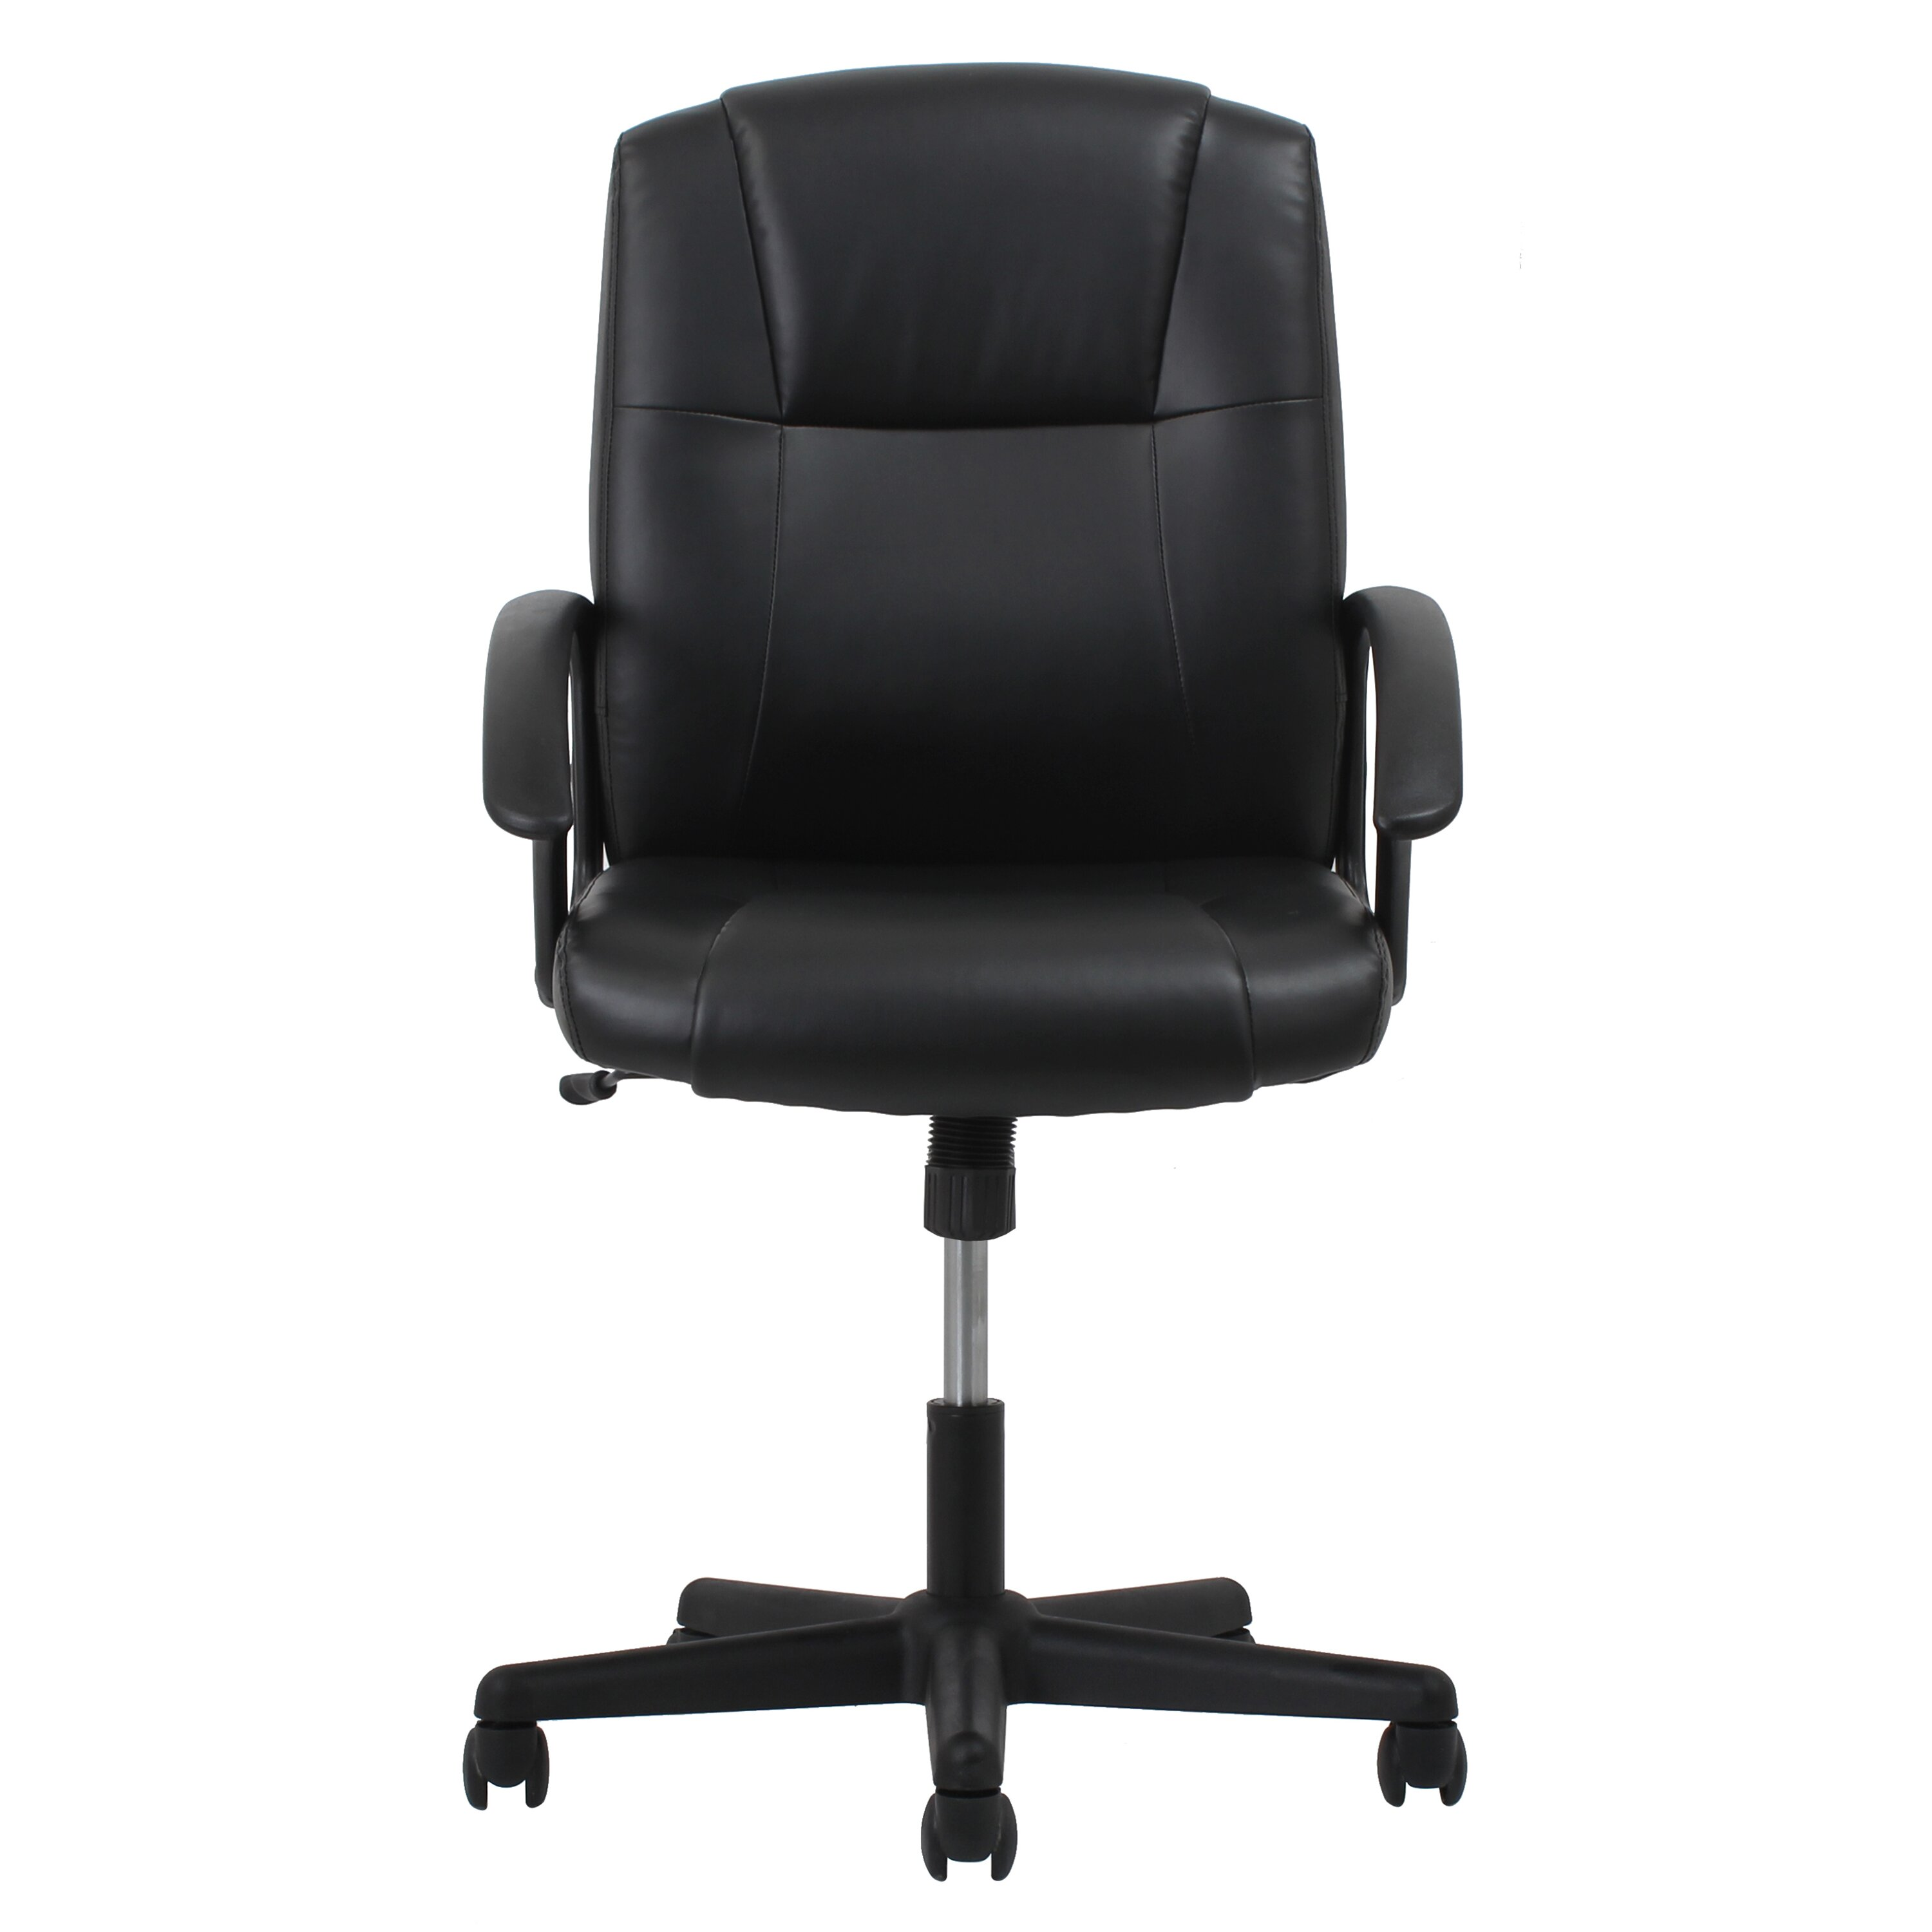 ofm ergonomic leather executive office chair with arms